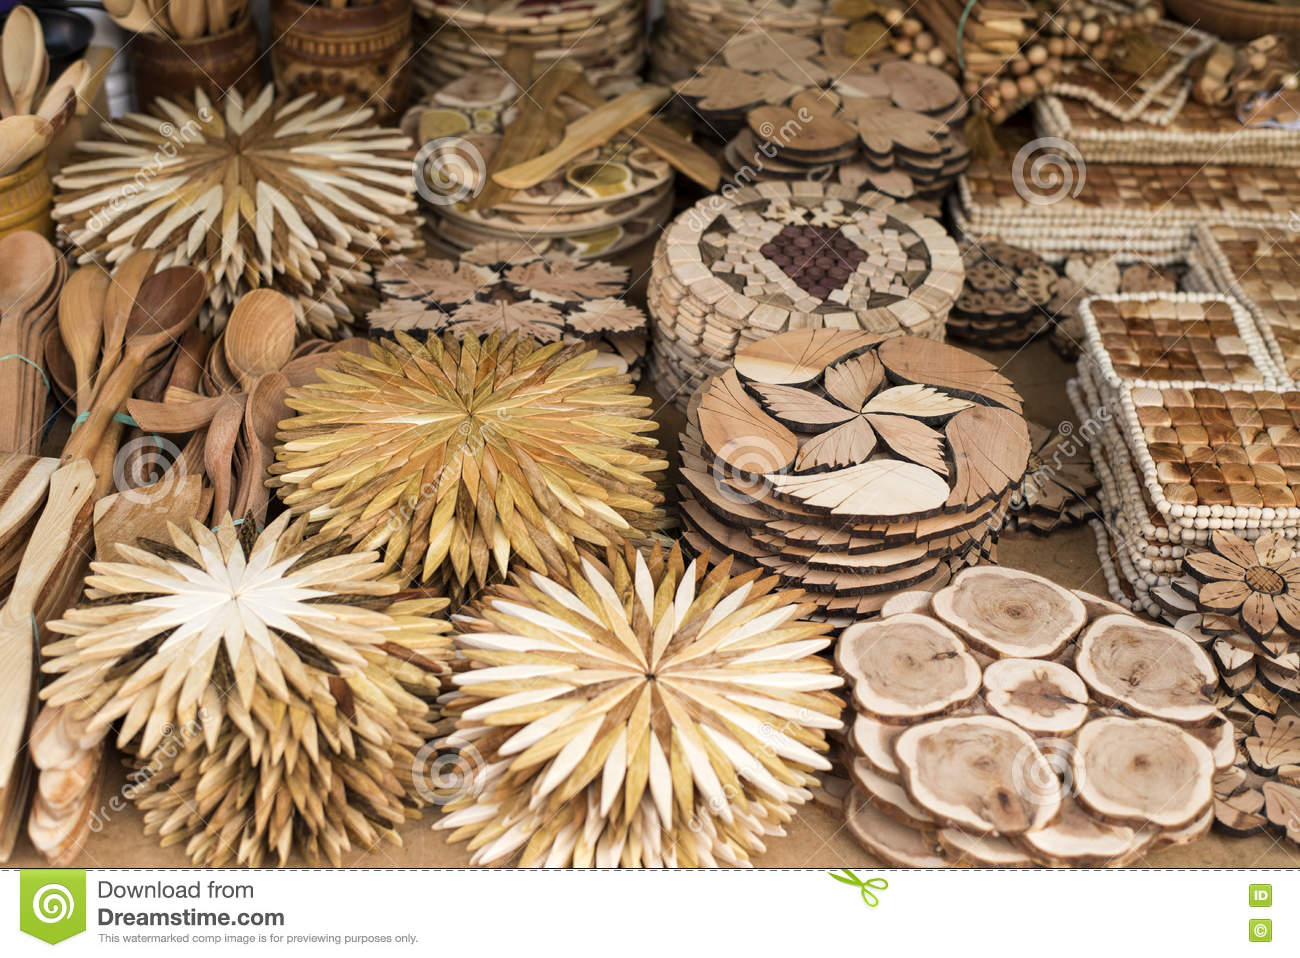 Marvelous Handmade Wooden Utensils Stock Photo Image Of Carving Download Free Architecture Designs Grimeyleaguecom